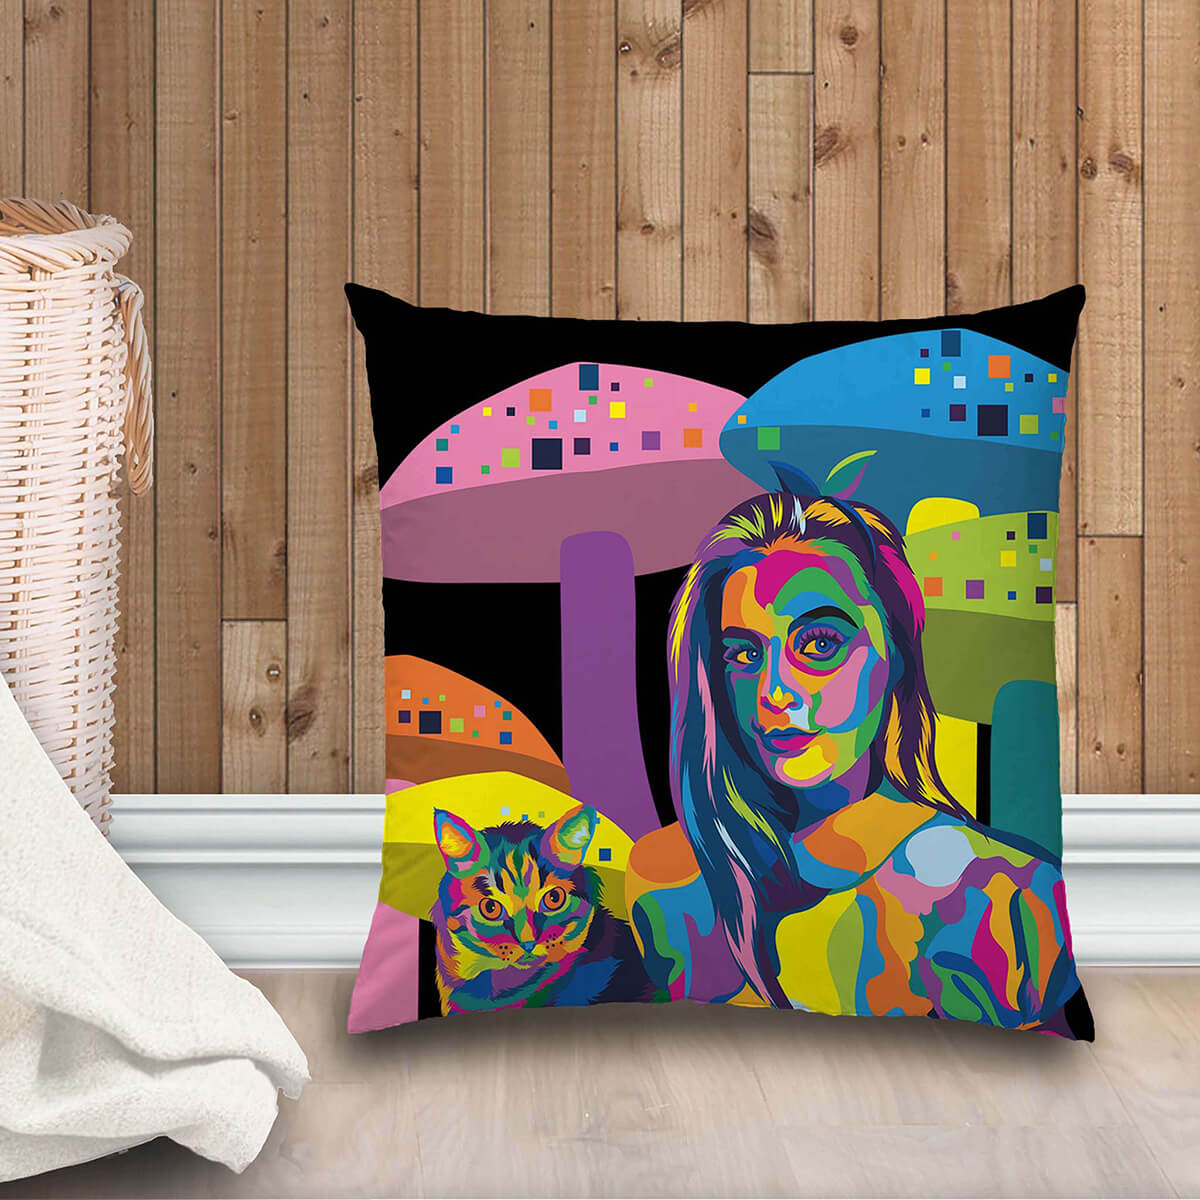 CUSTOM COLOURFUL STYLE FAMILY PLUSH PILLOW